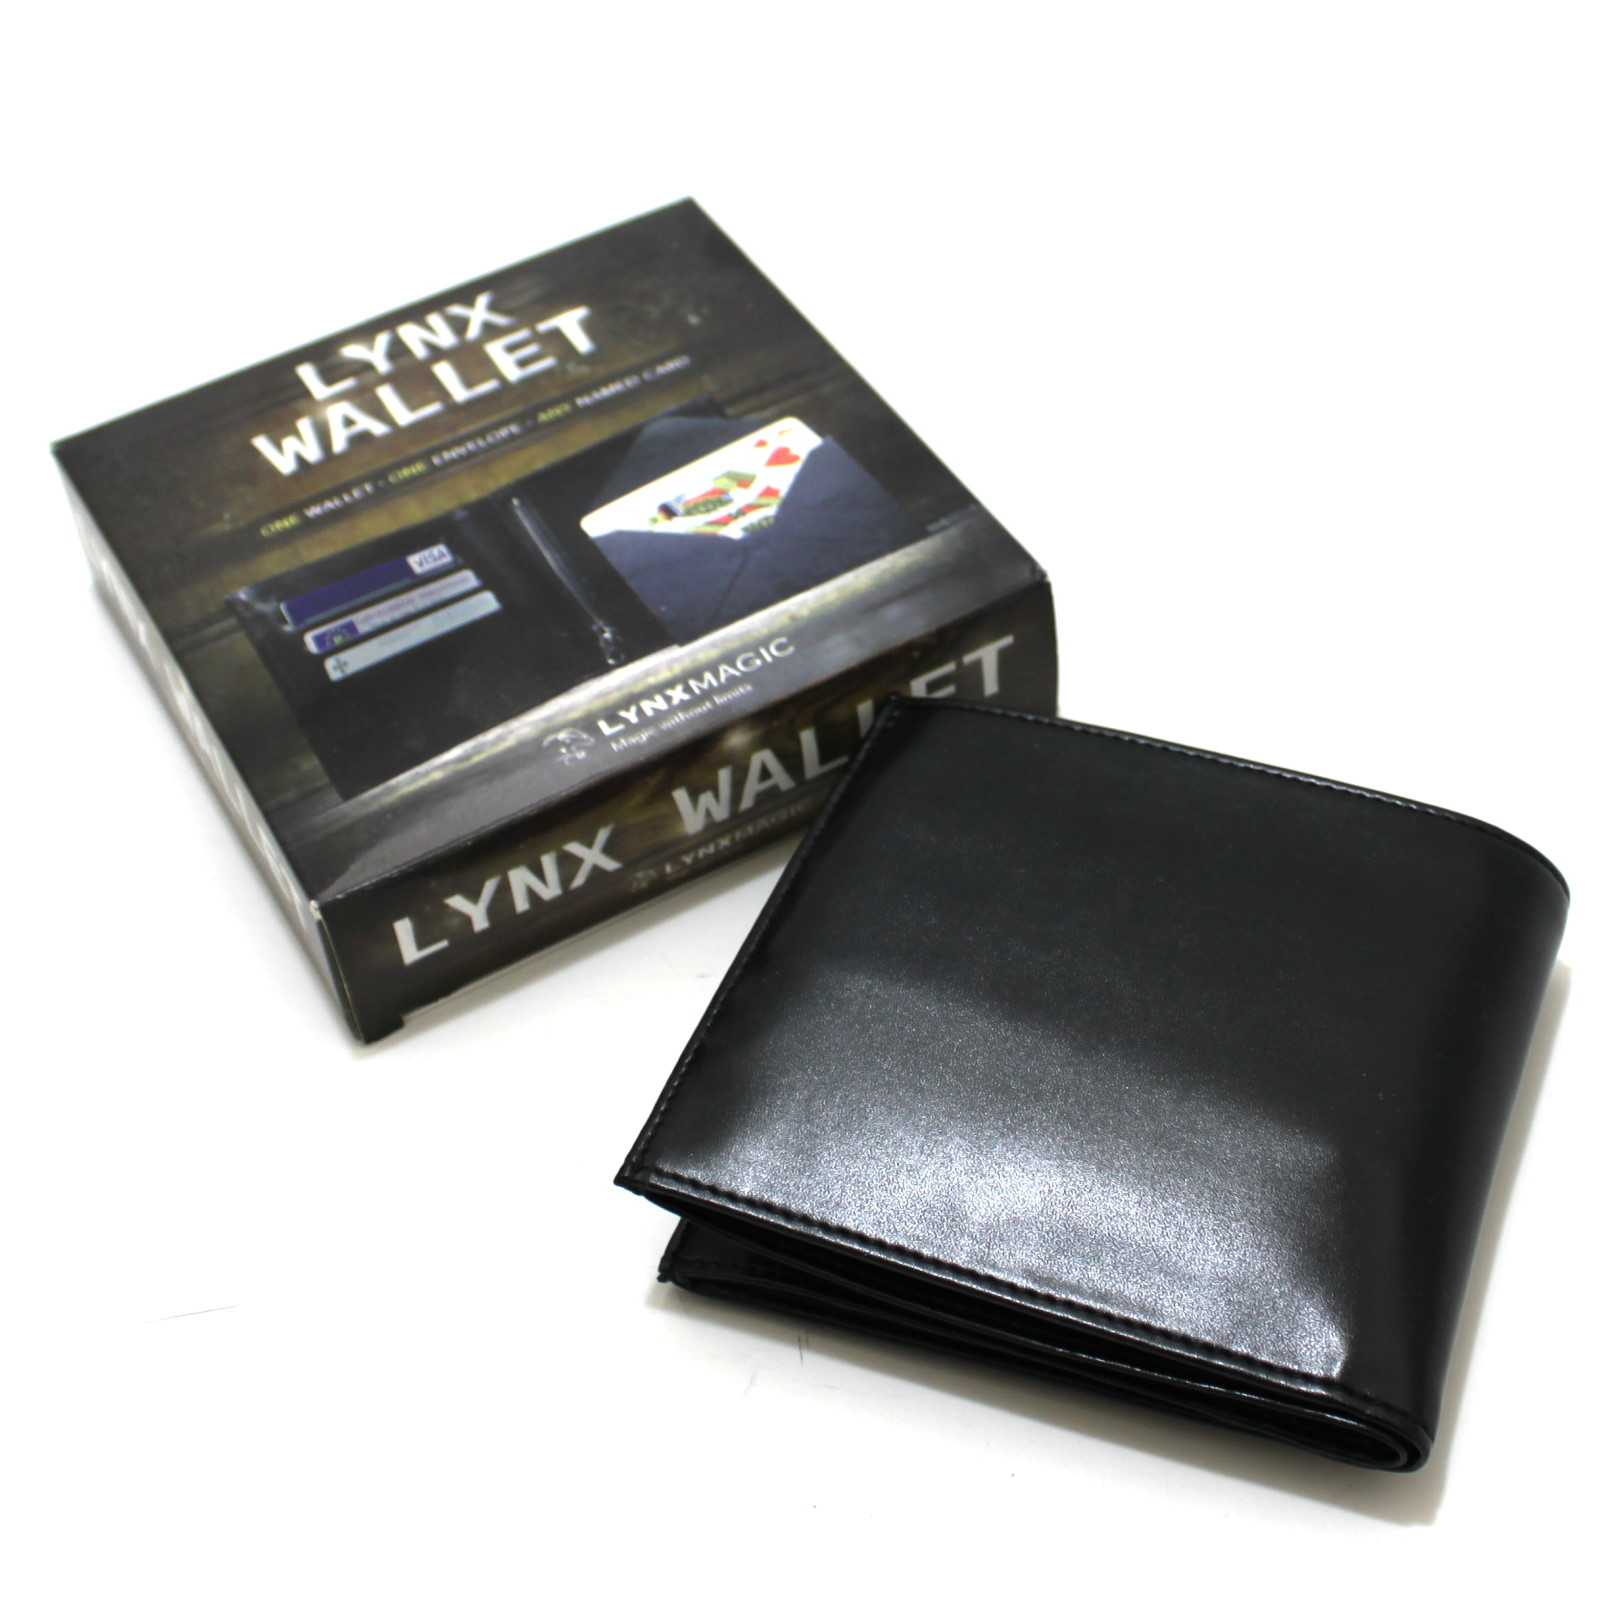 Lynx Wallet by Lynx Magic